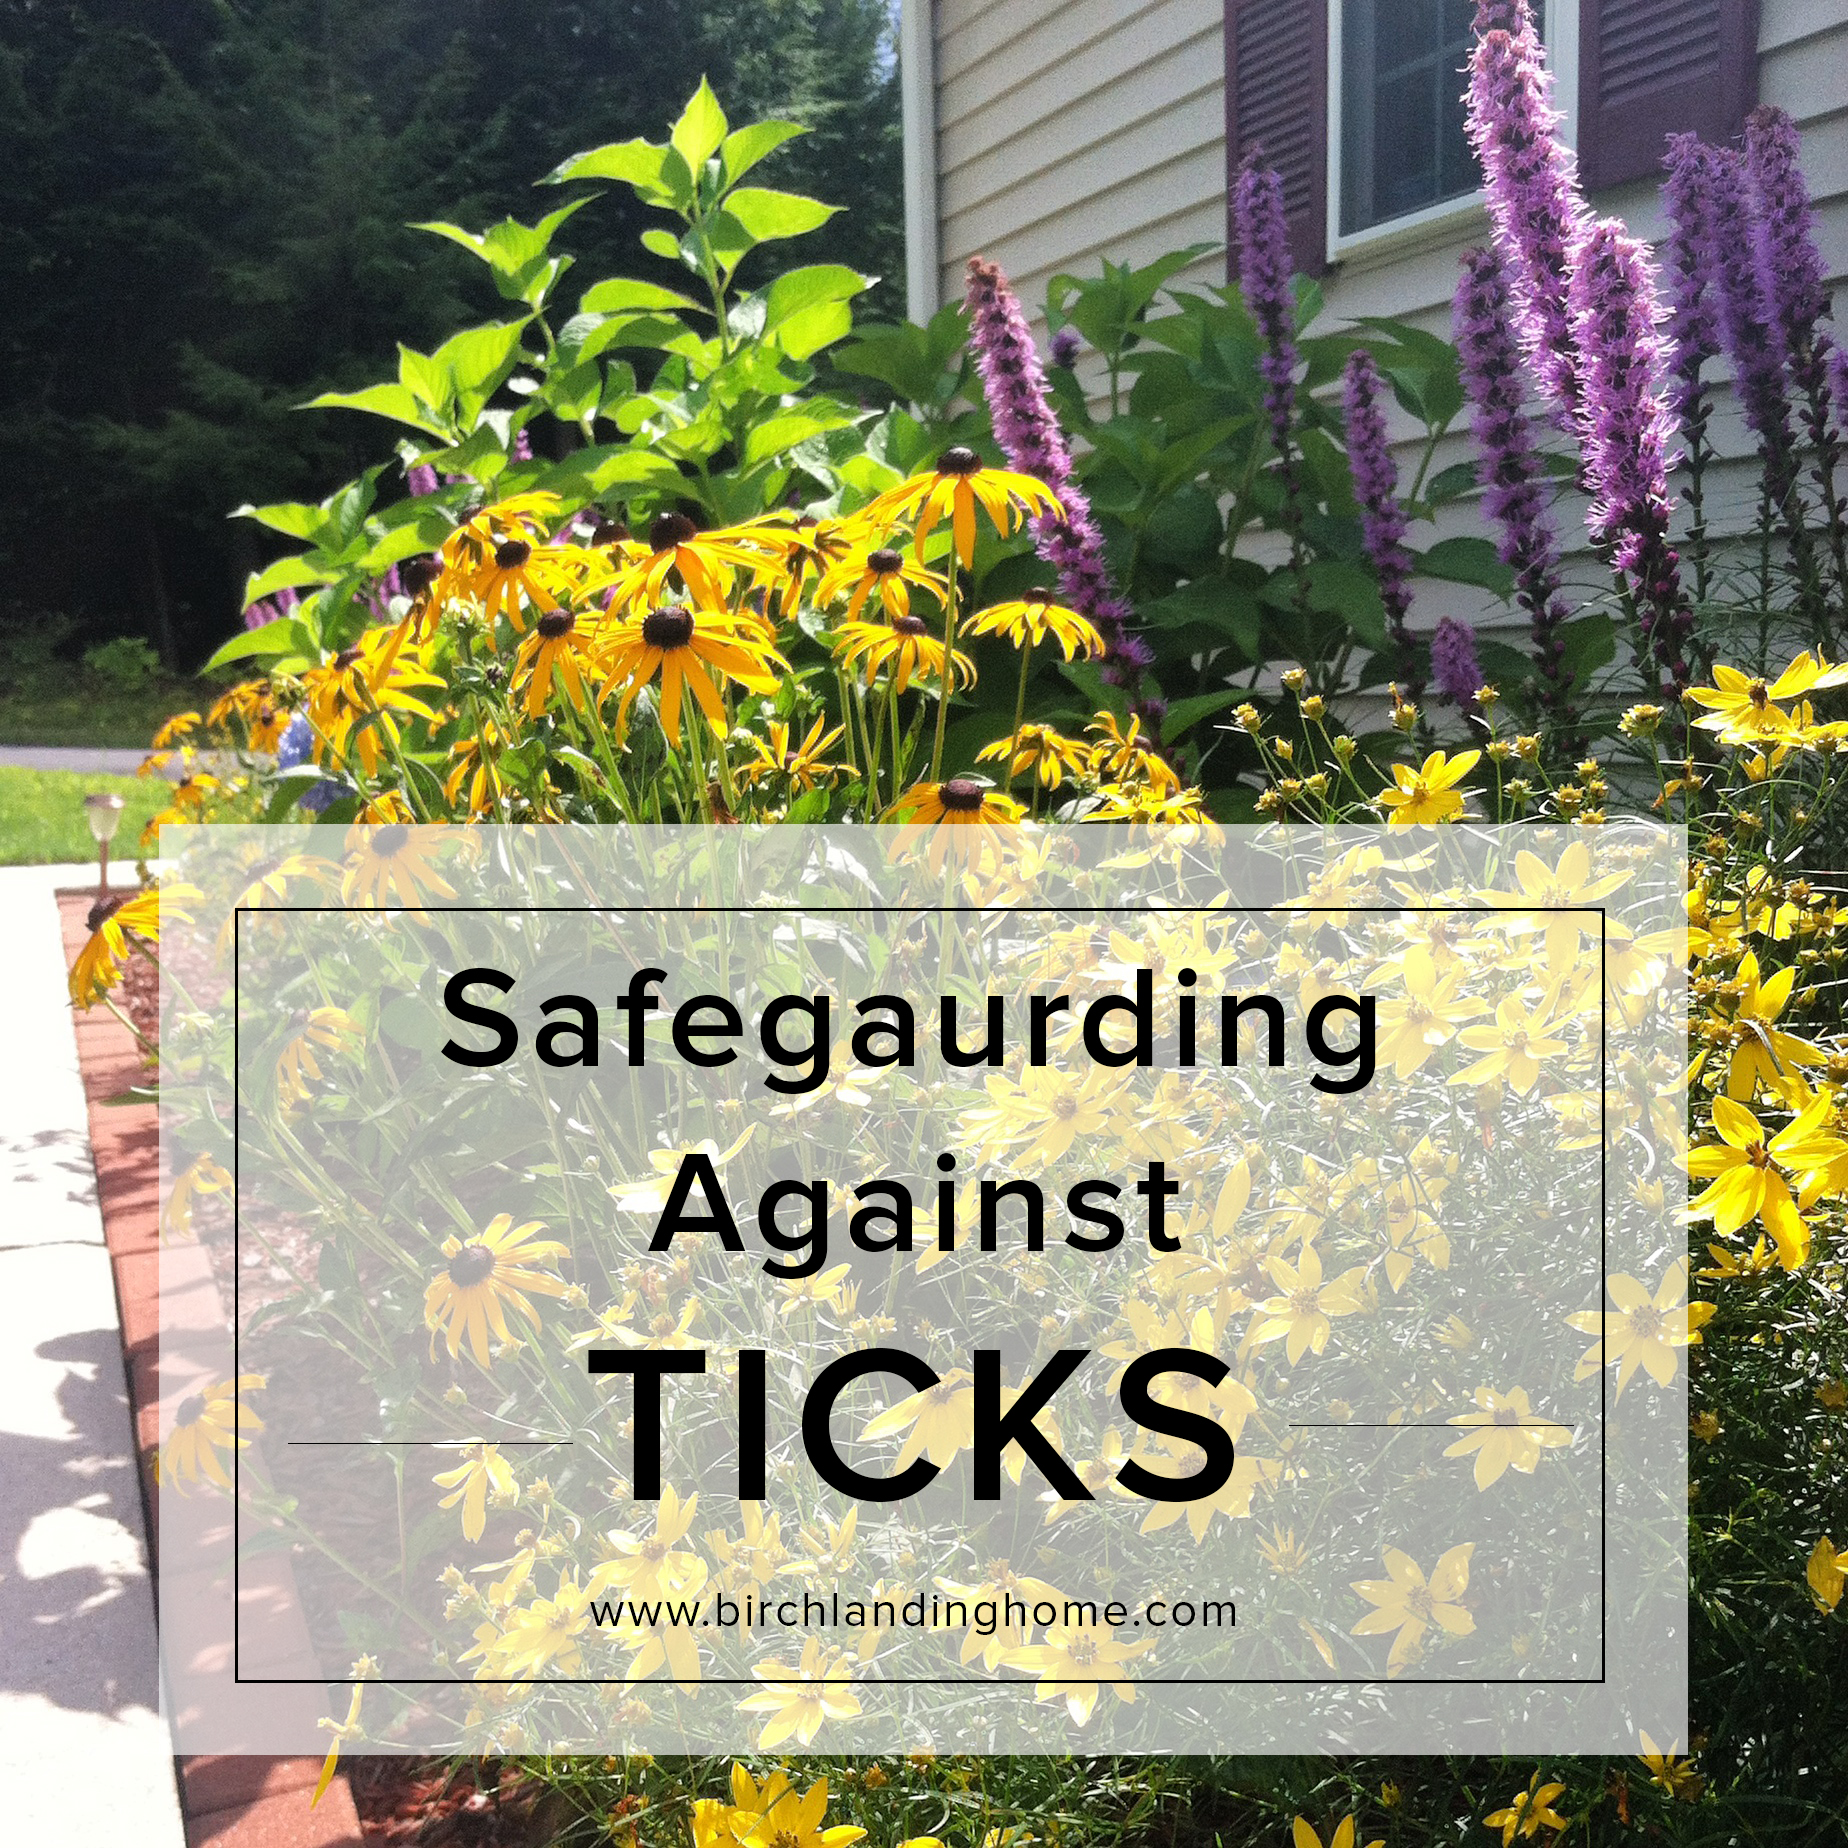 Safeguarding your yard, family, and pets against TICKS